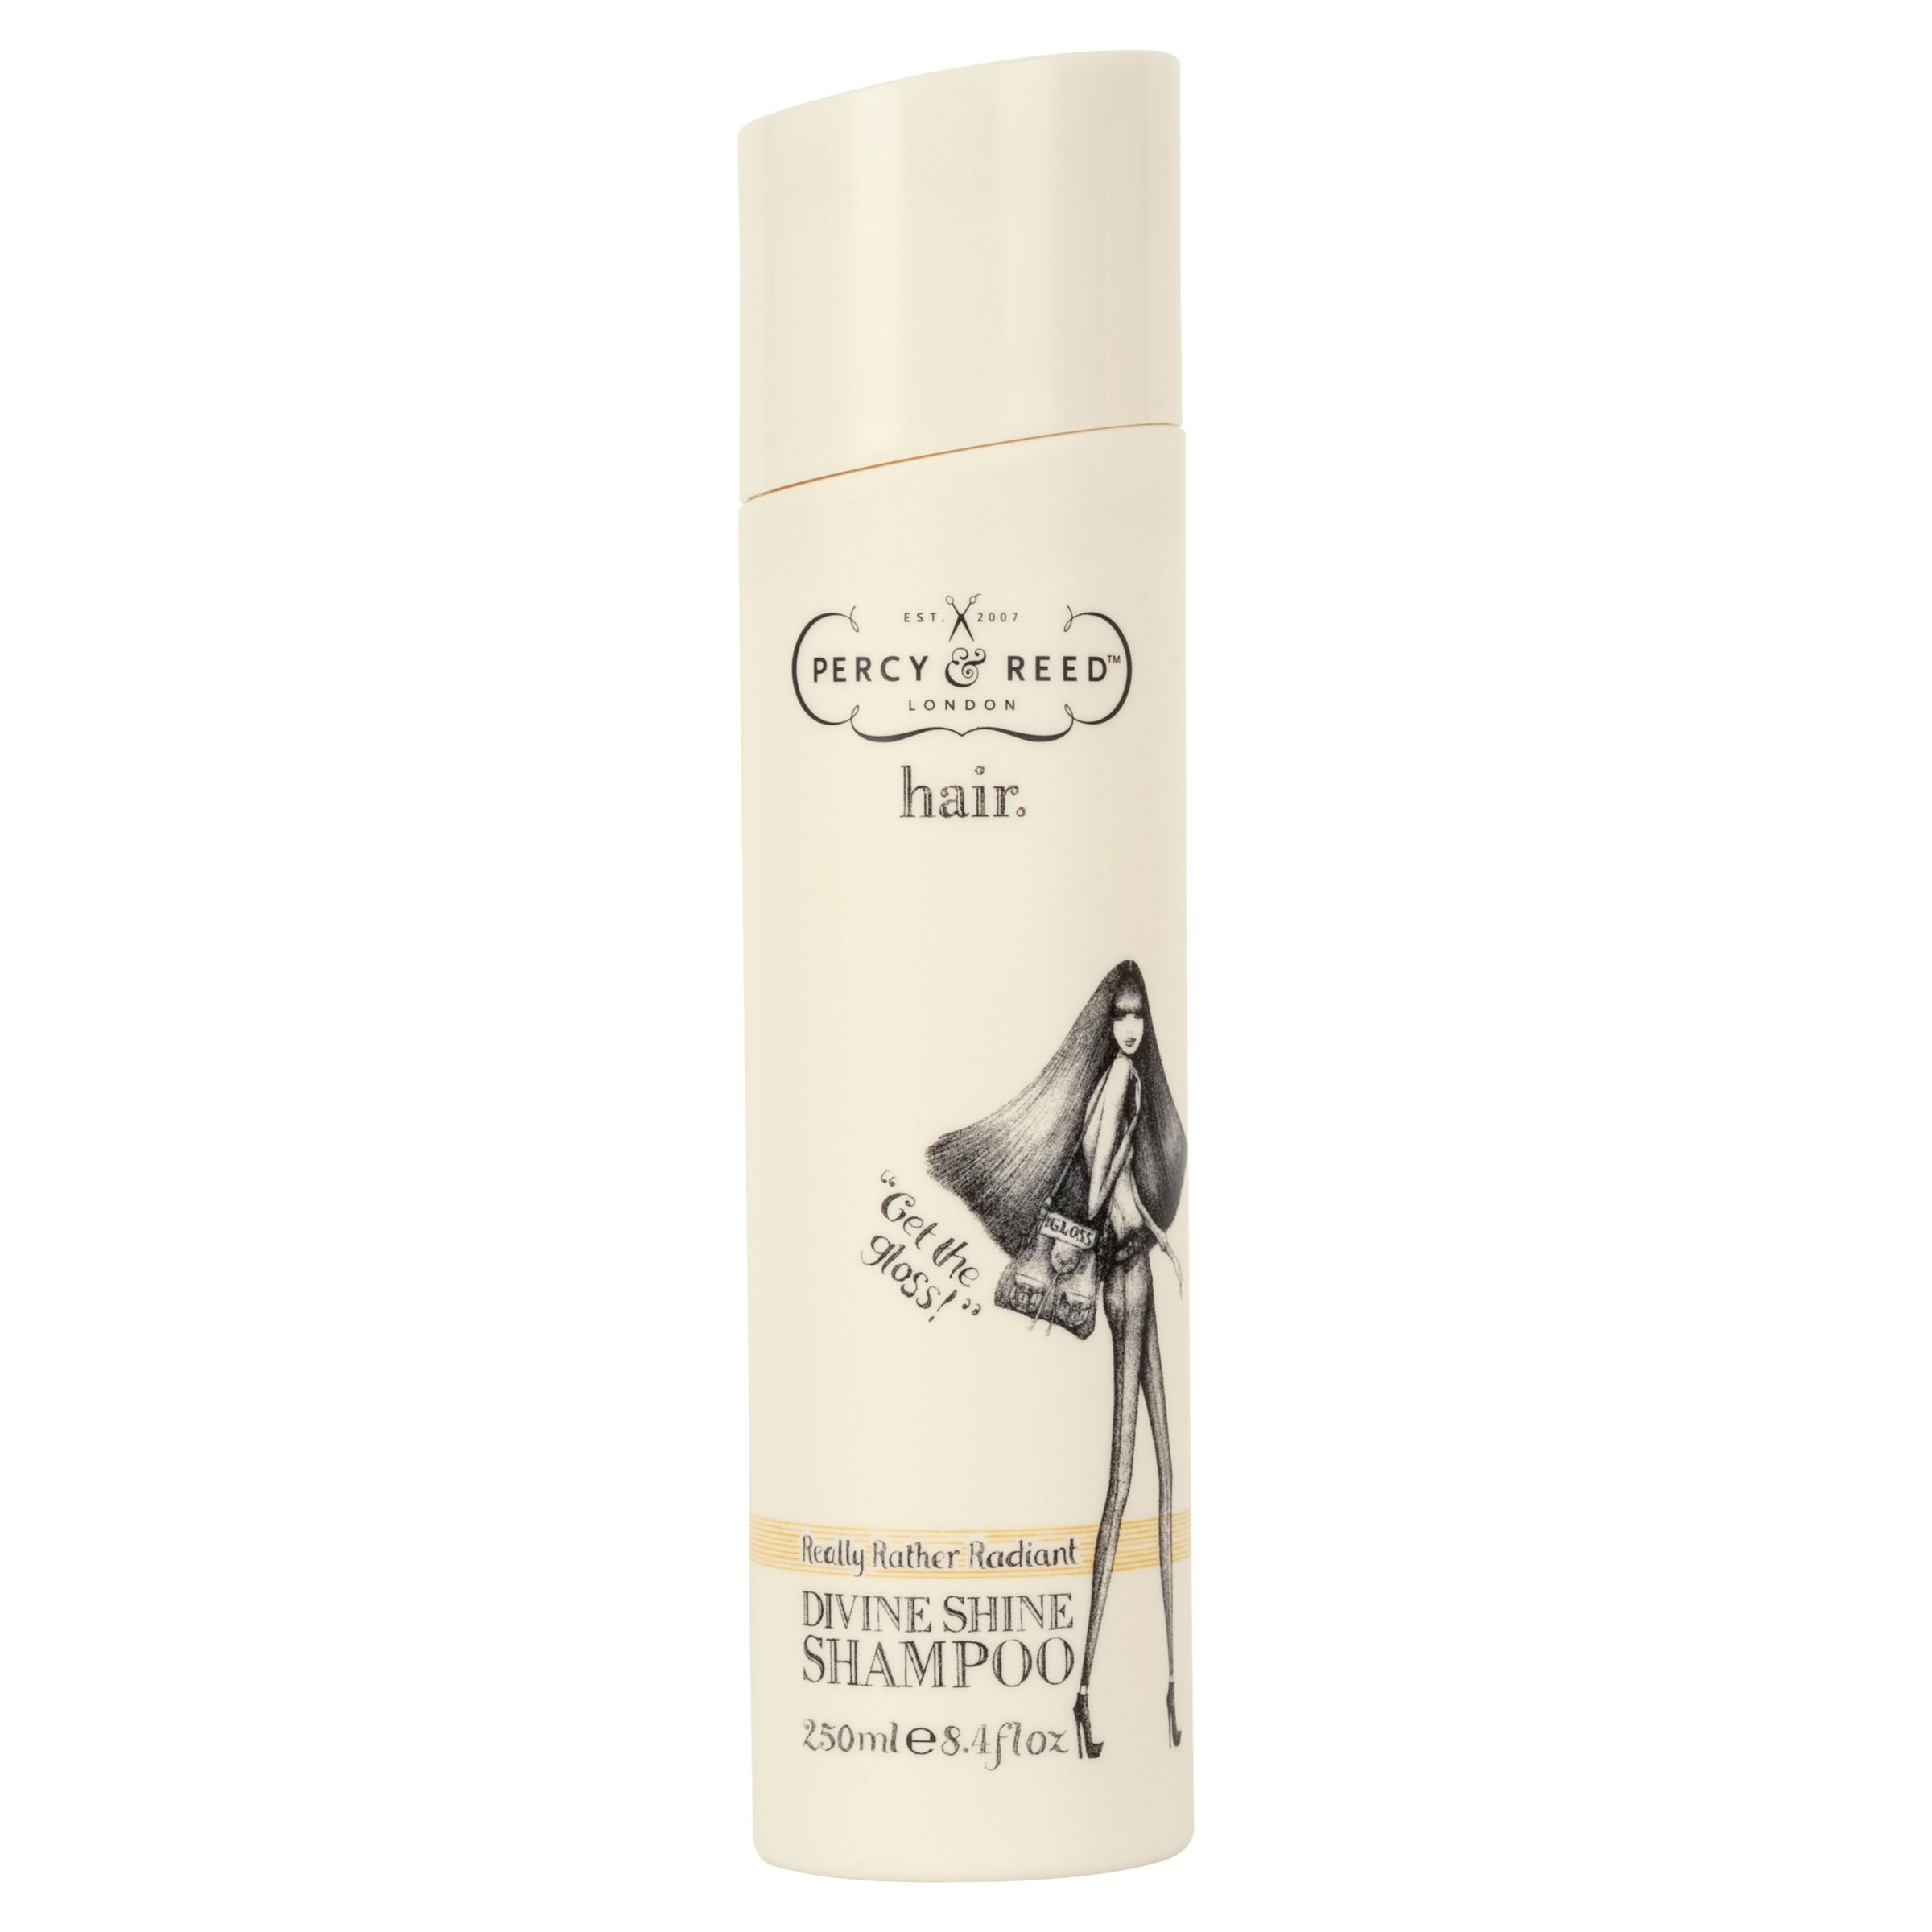 Percy & Reed Percy & Reed Really Rather Radiant Divine Shine Shampoo, 250ml